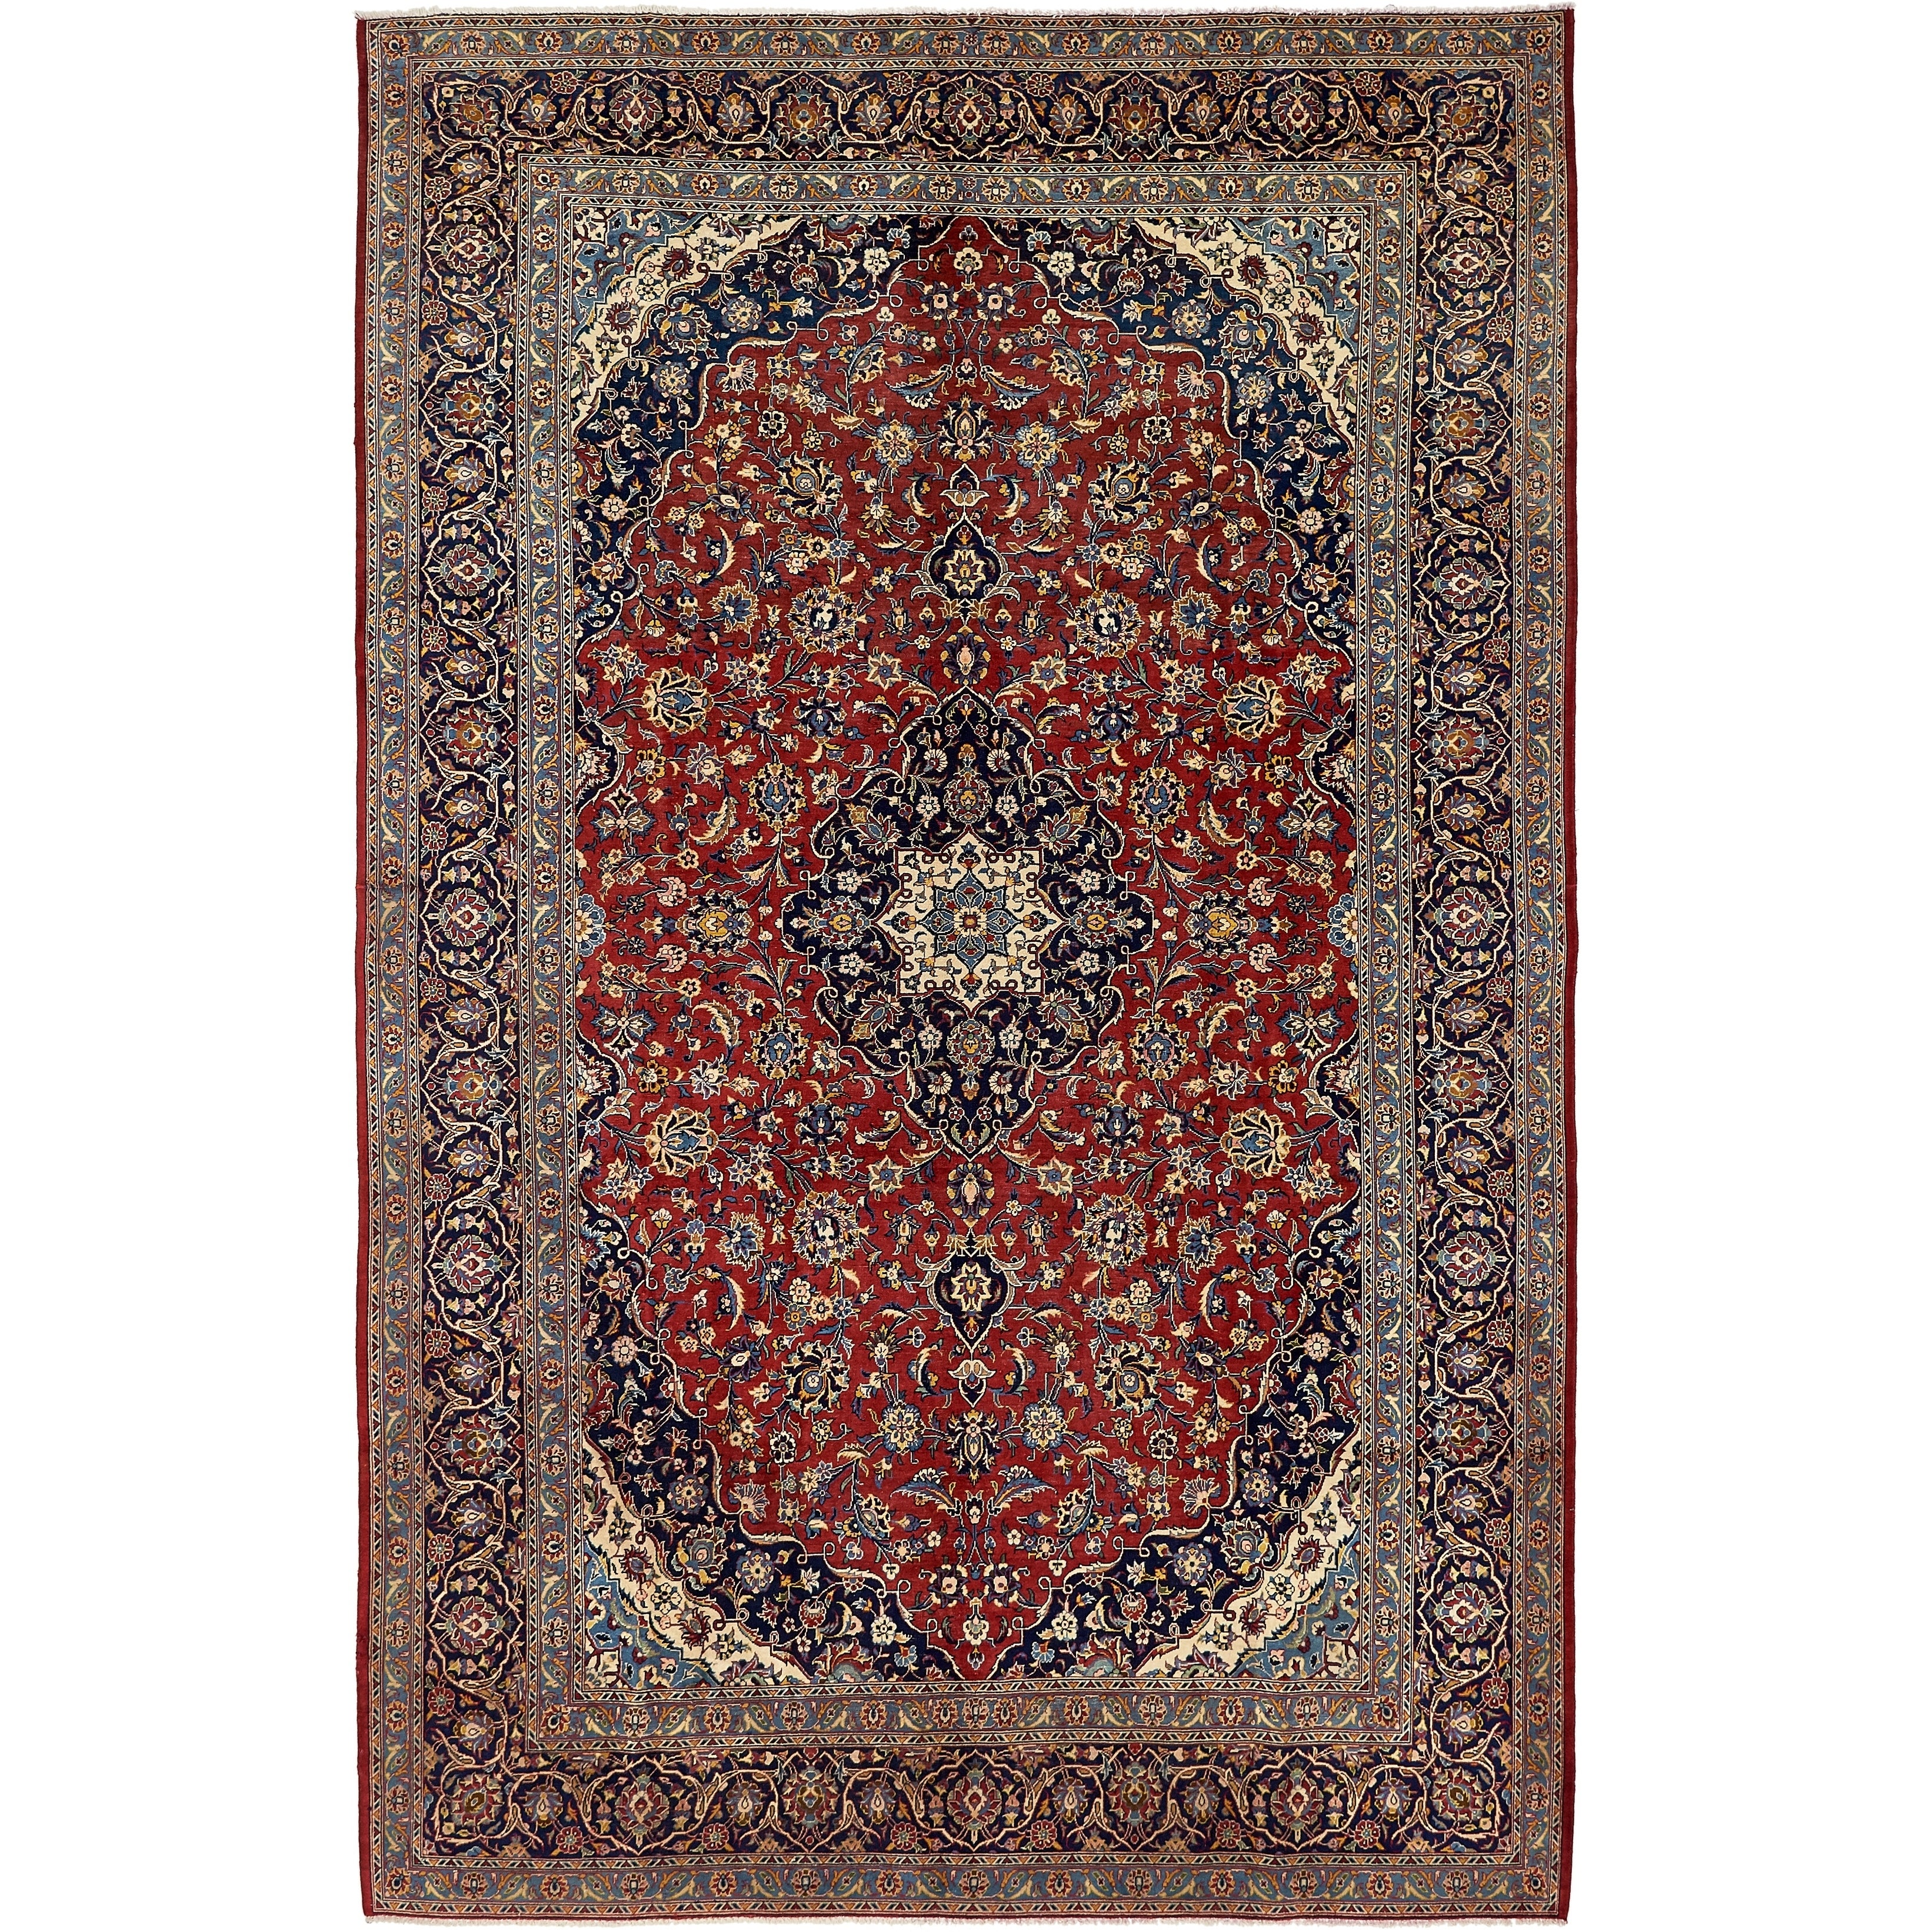 Hand Knotted Kashan Semi Antique Wool Area Rug - 8 5 x 12 10 (Red - 8 5 x 12 10)